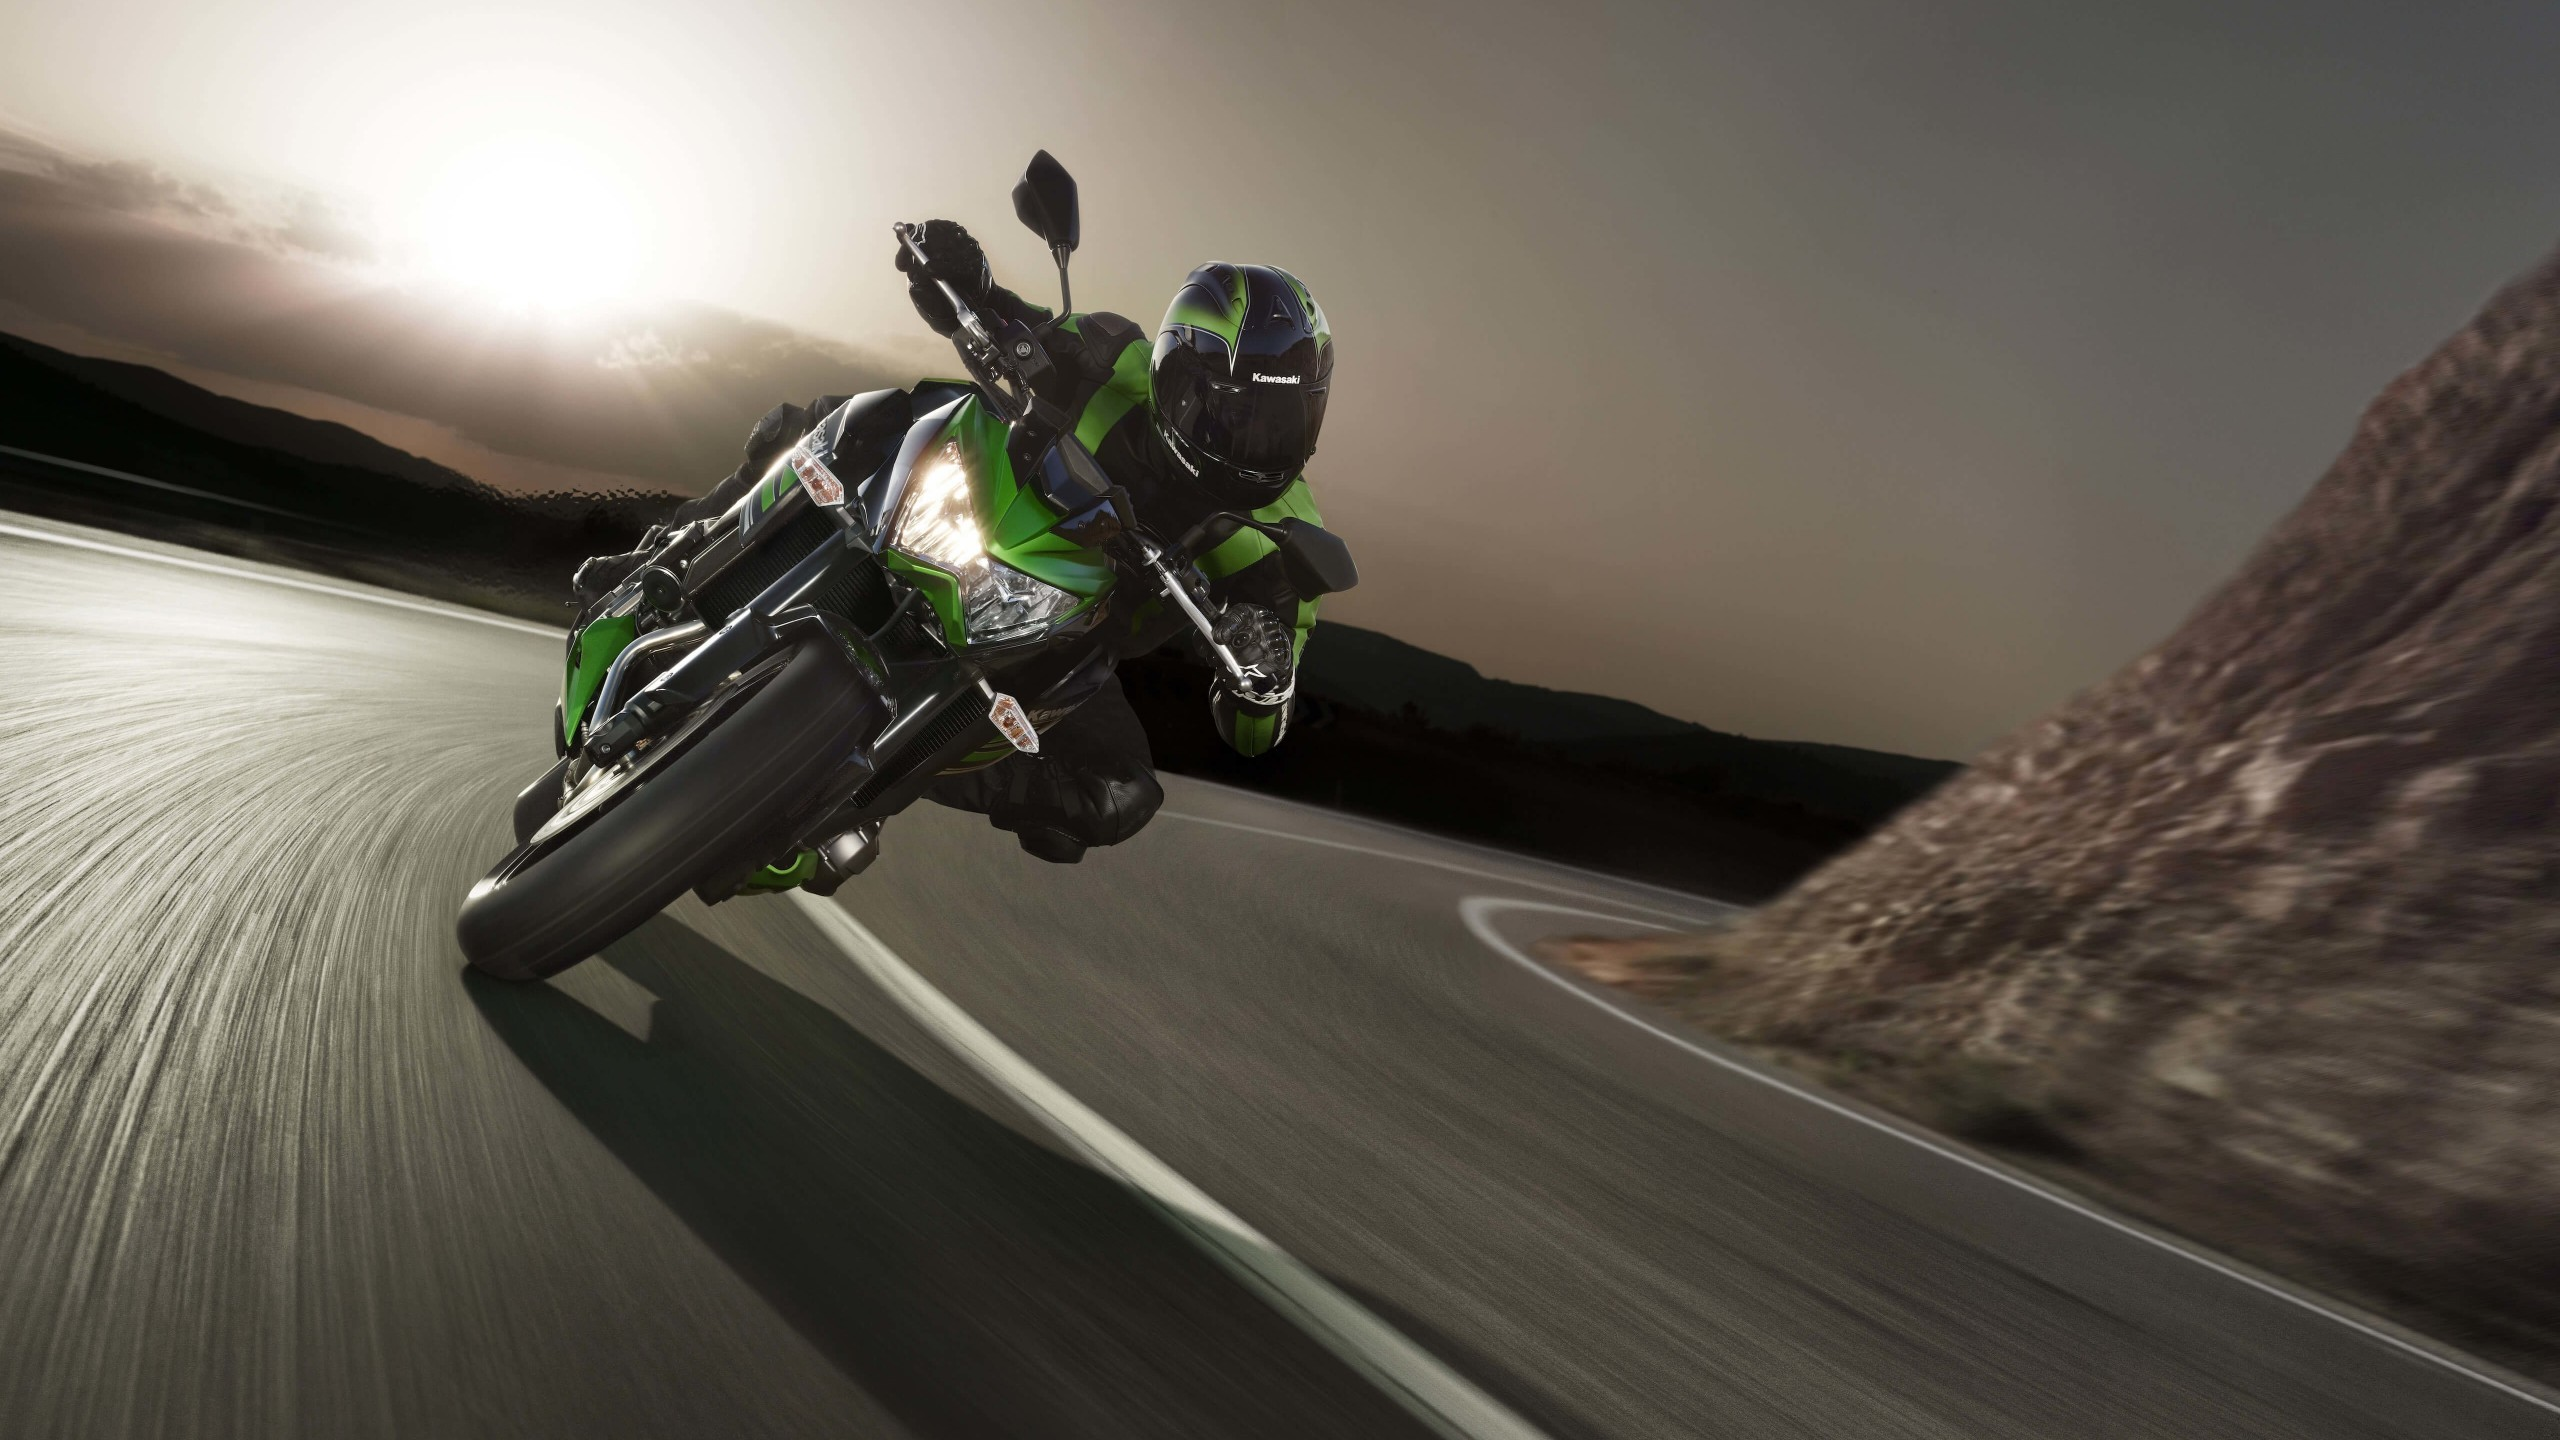 Kawasaki Ninja ZX-10R Wallpaper for Desktop 2560x1440